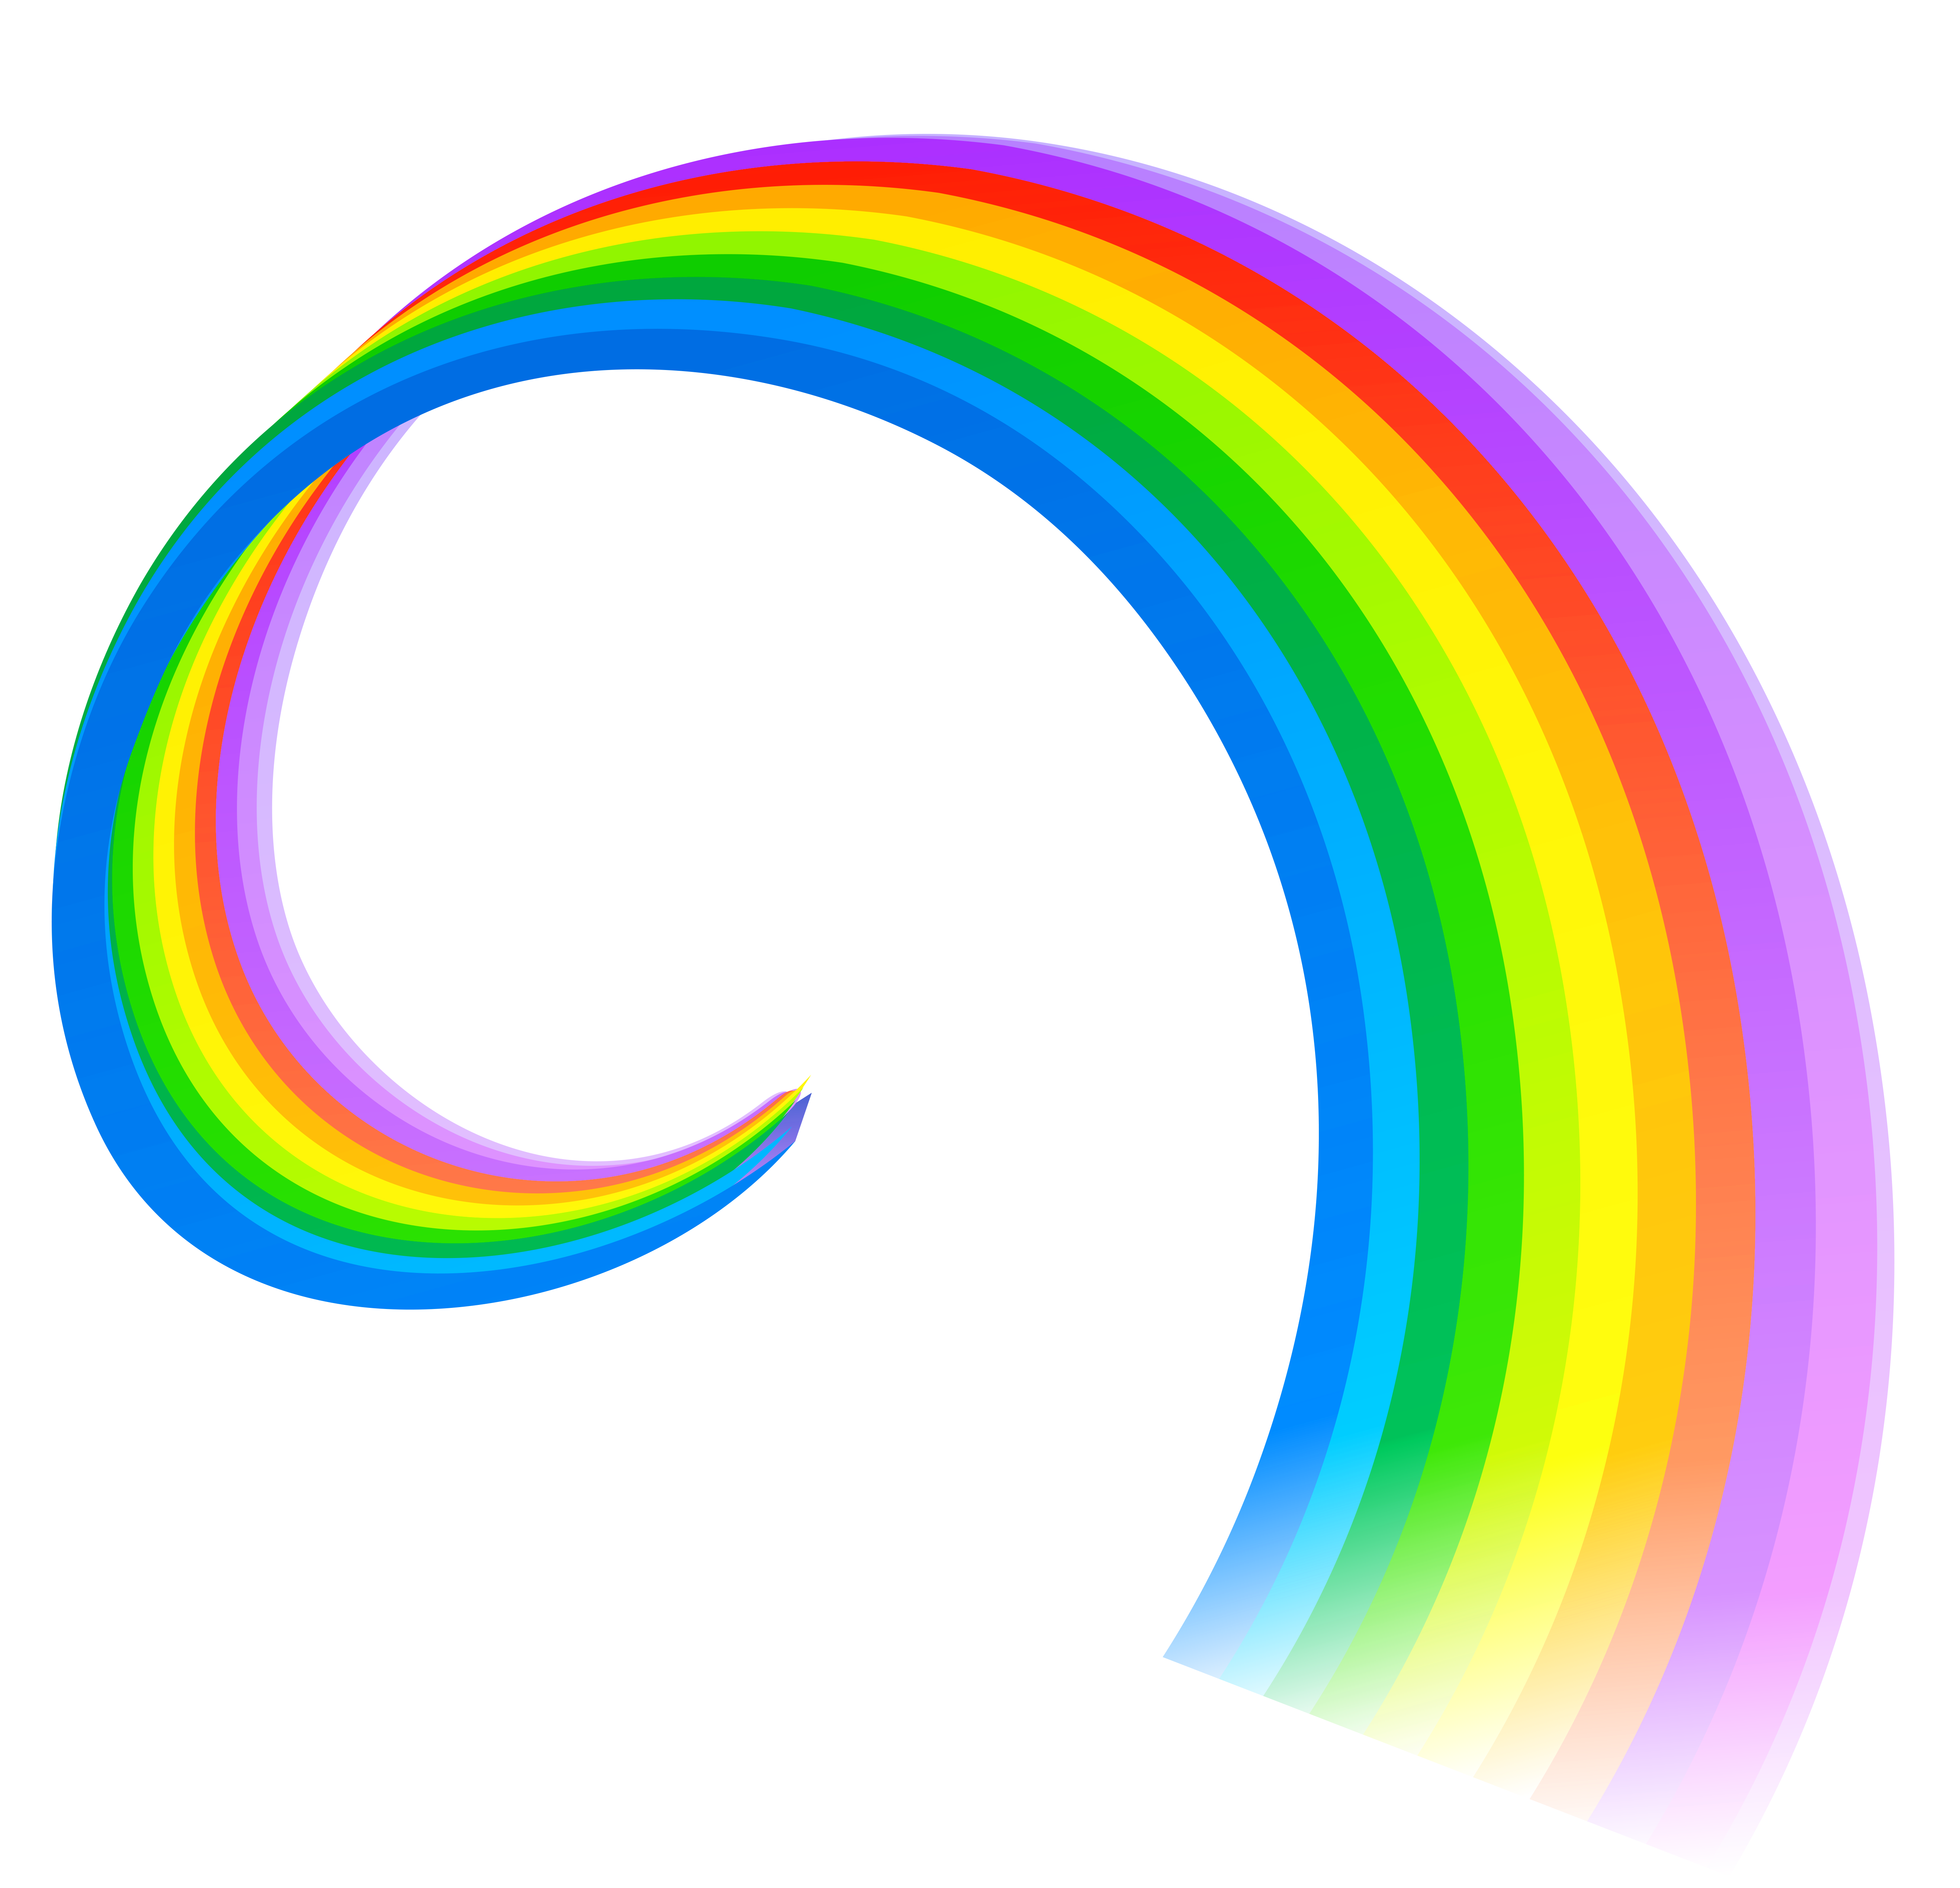 Rainbow line png. Clipart gallery yopriceville high